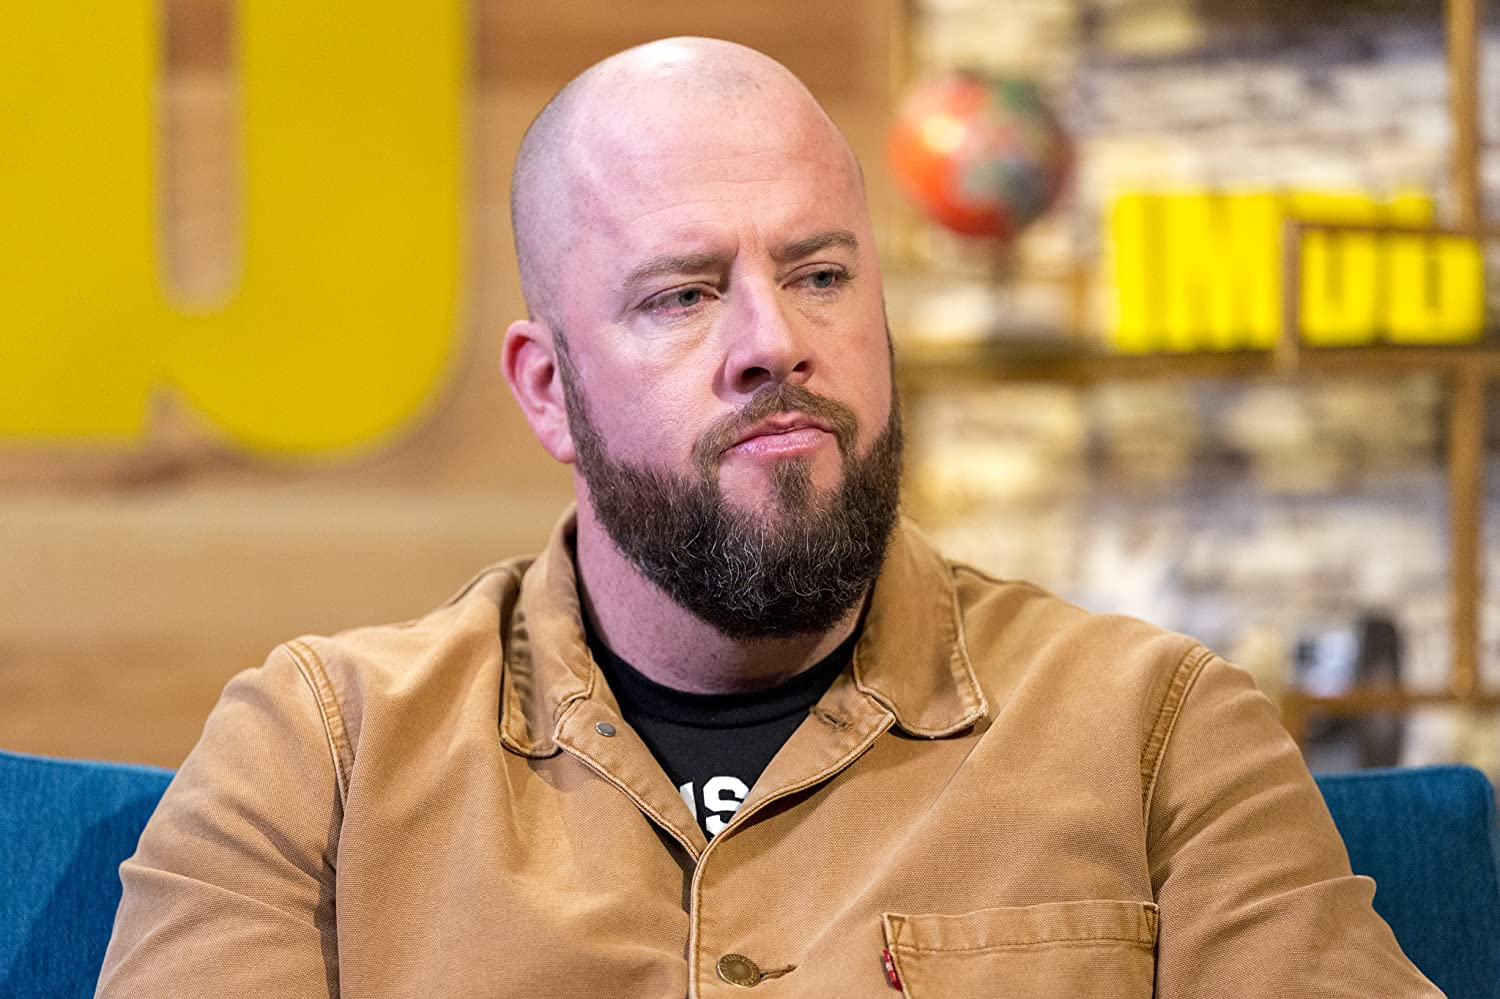 The 37-year old son of father (?) and mother(?), 193 cm tall Chris Sullivan in 2018 photo